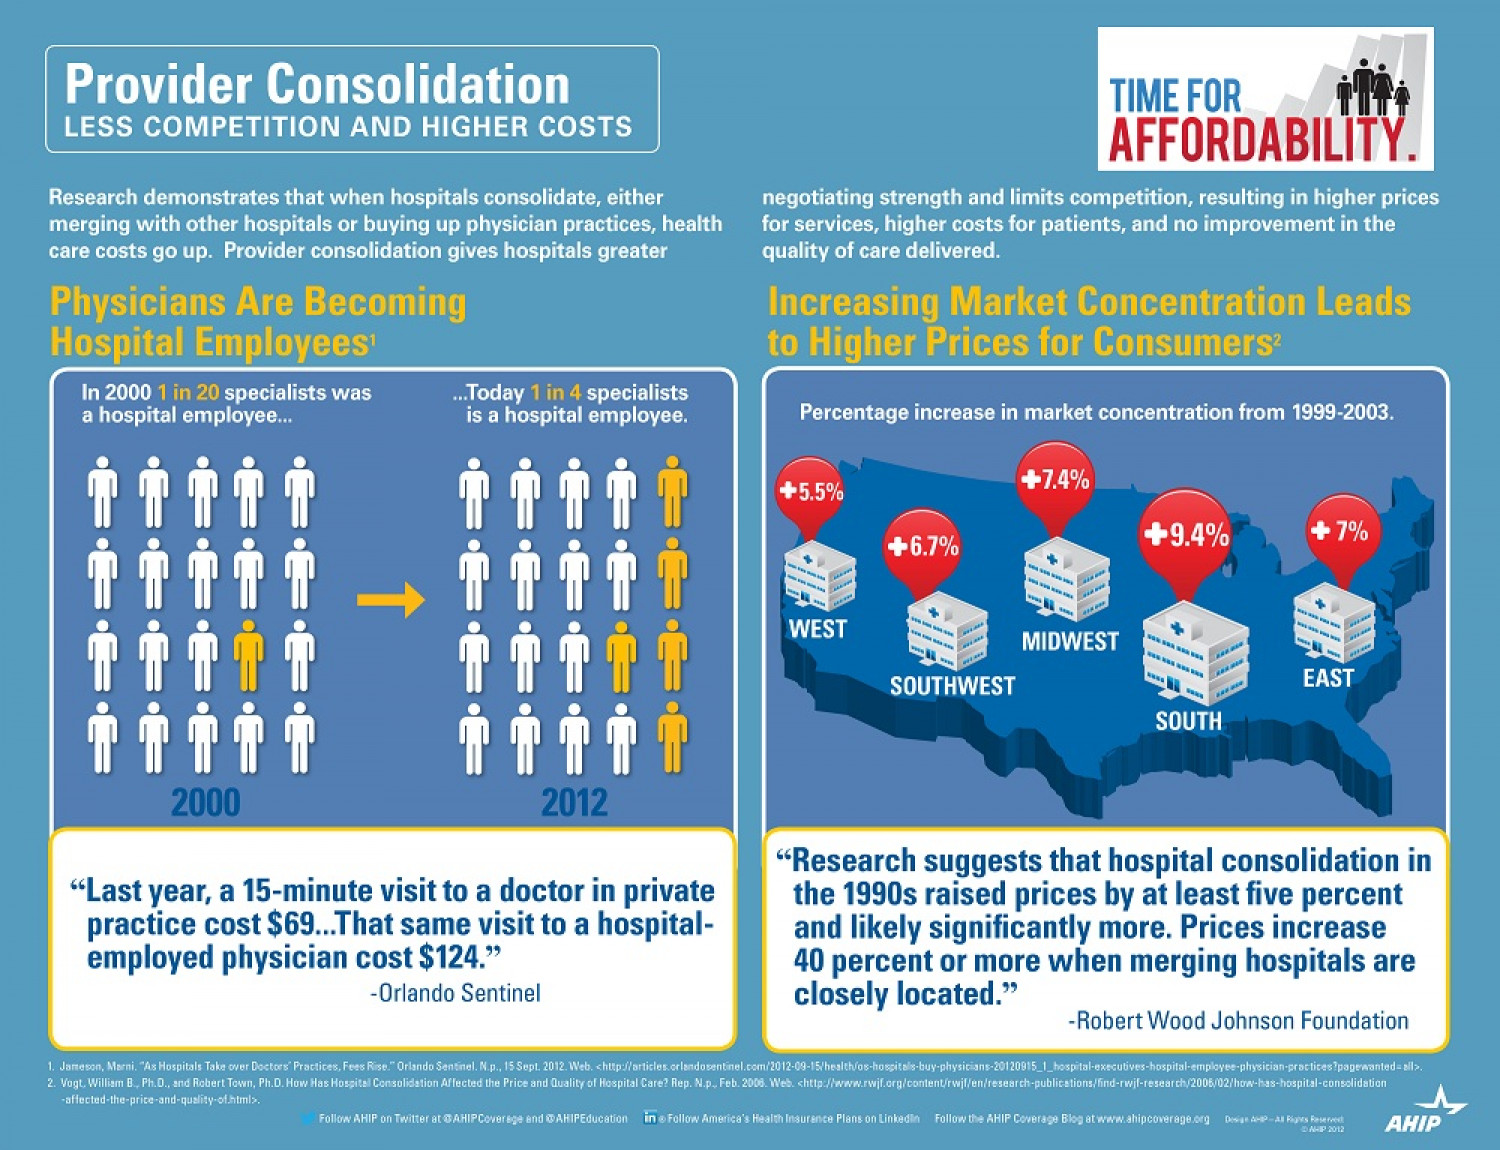 Provider Consolidation: Less Competition and Higher Costs Infographic